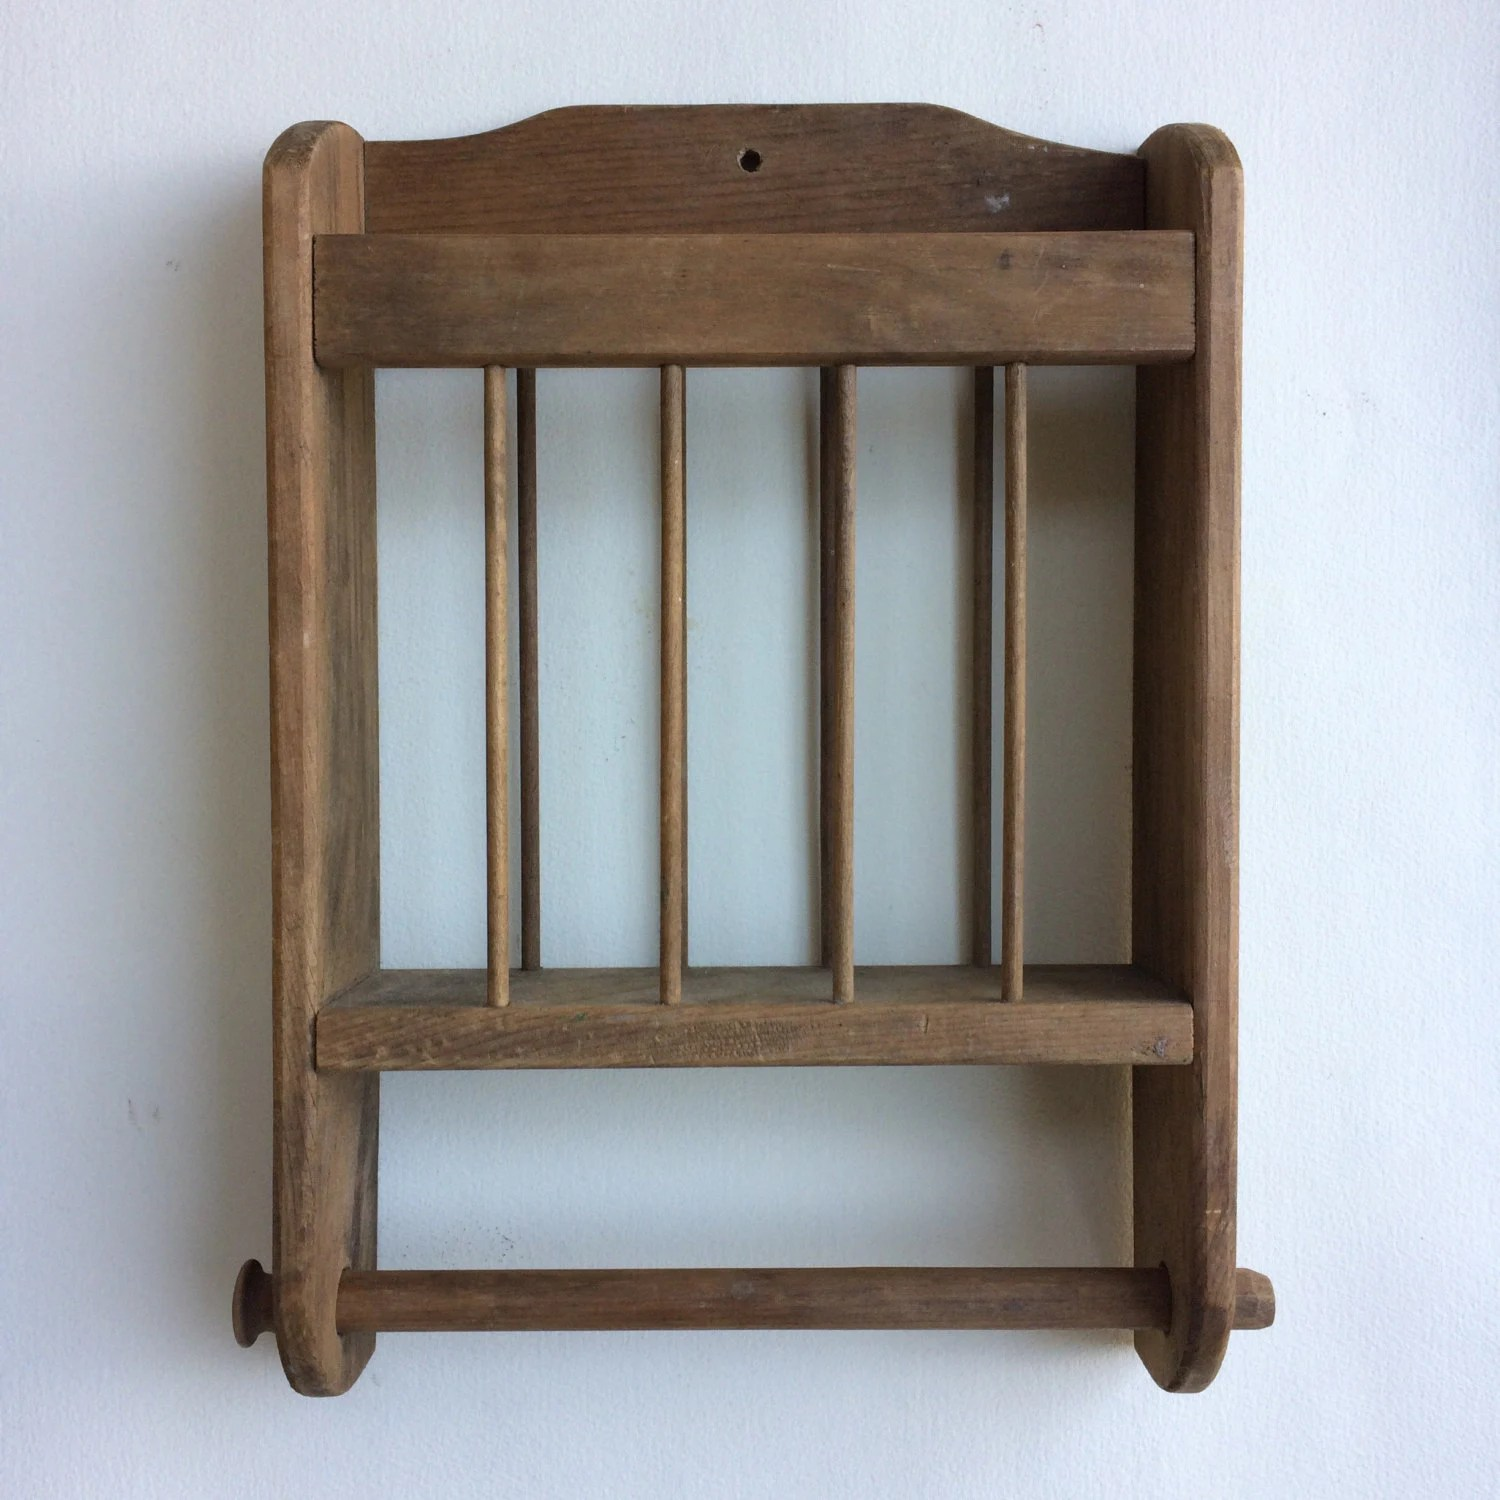 Antique Primitive Wall Hanging Wooden Plate Rack With Towel